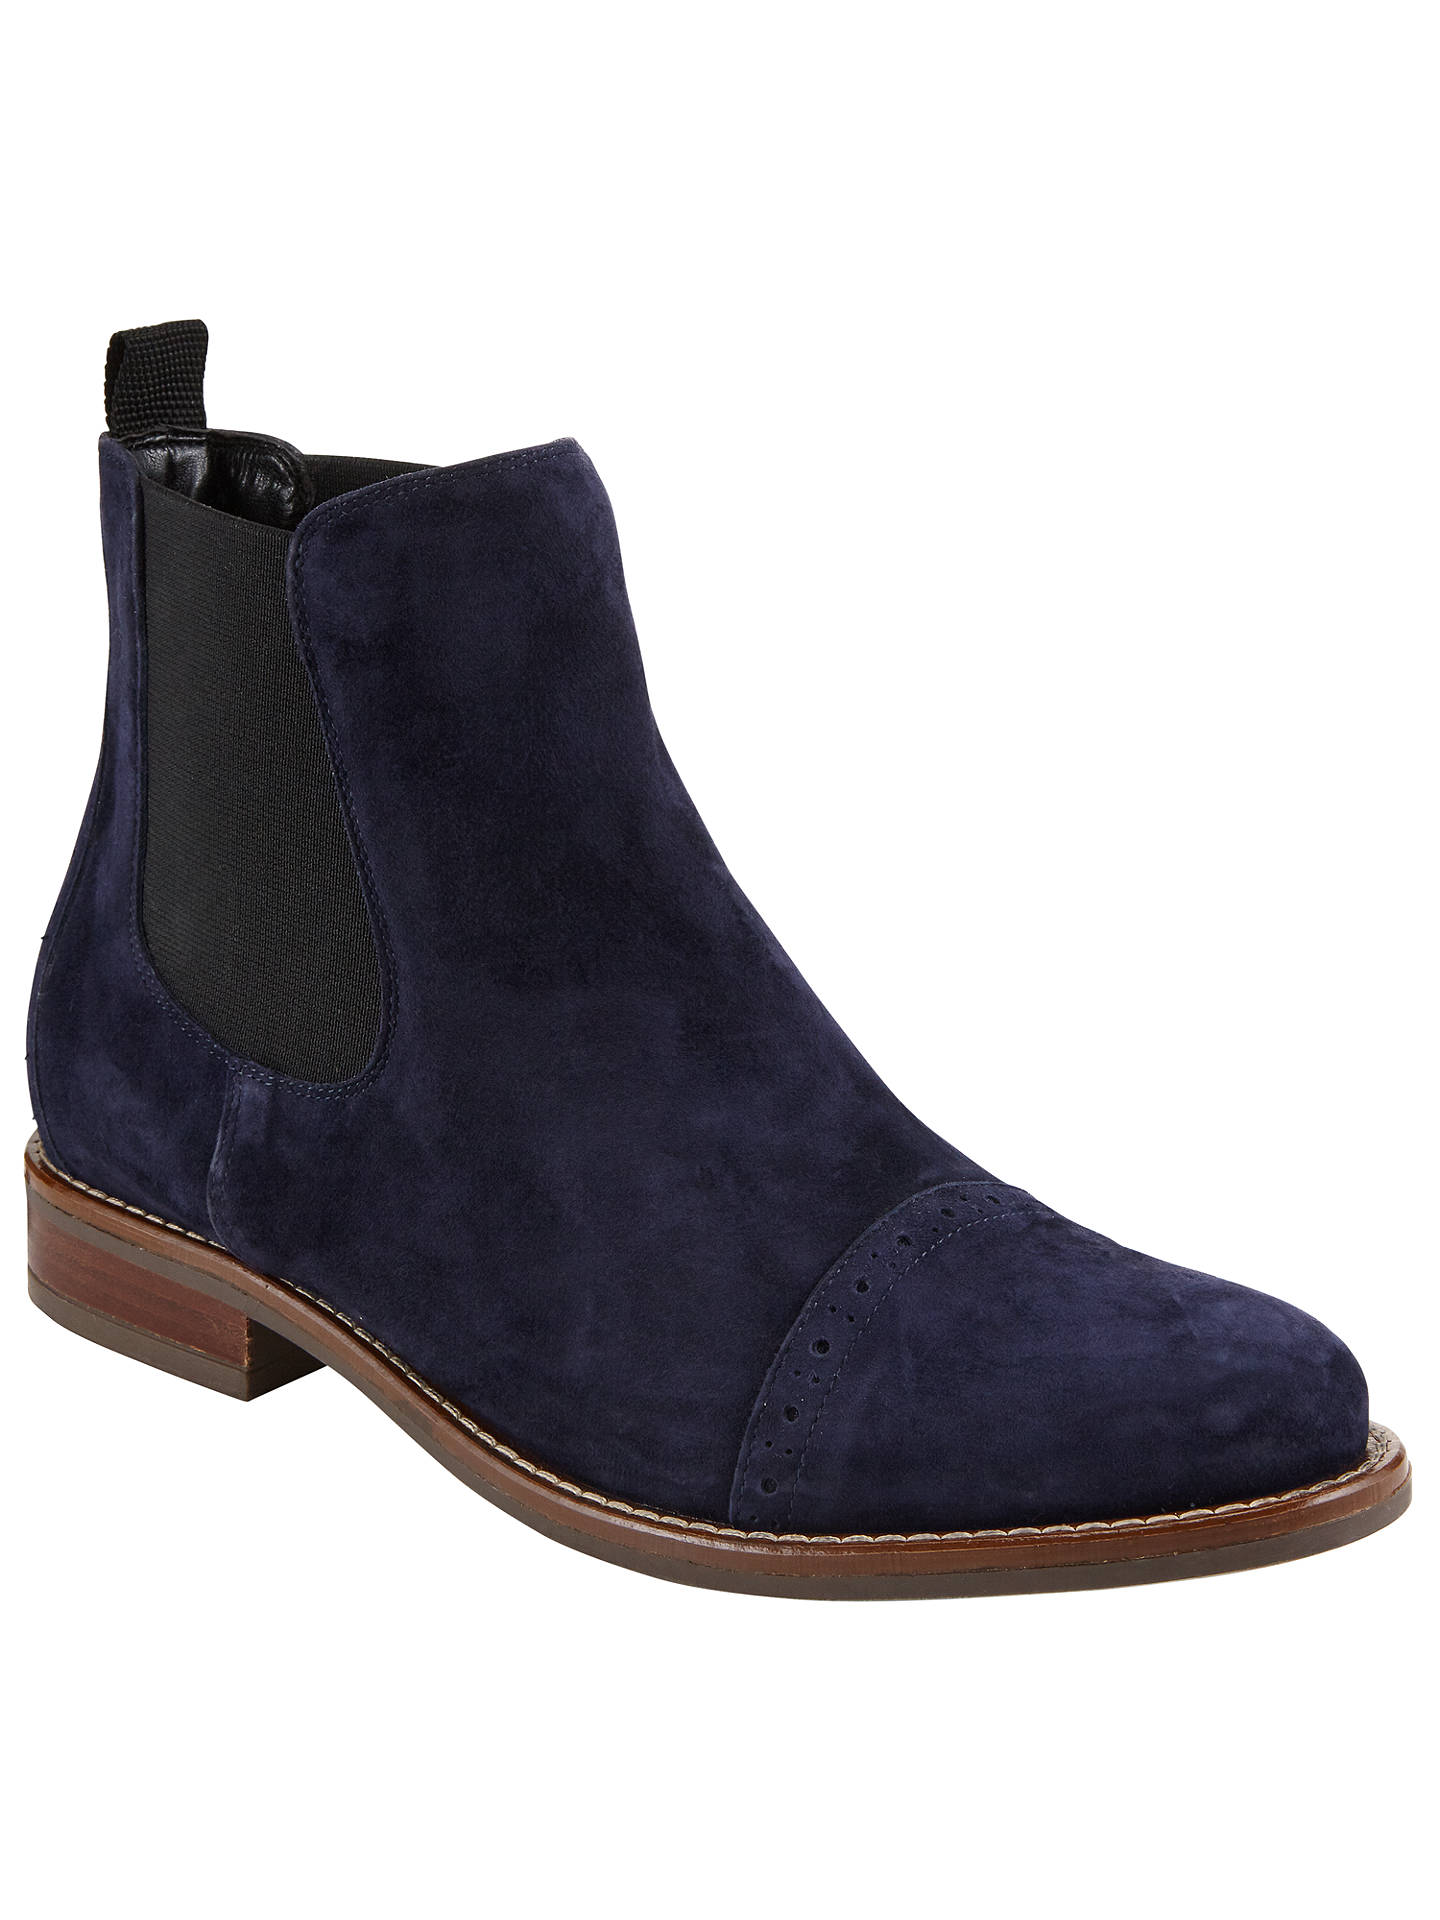 4c6a3f2ba Buy John Lewis Orna Ankle Chelsea Boots, Navy, 3 Online at johnlewis.com ...